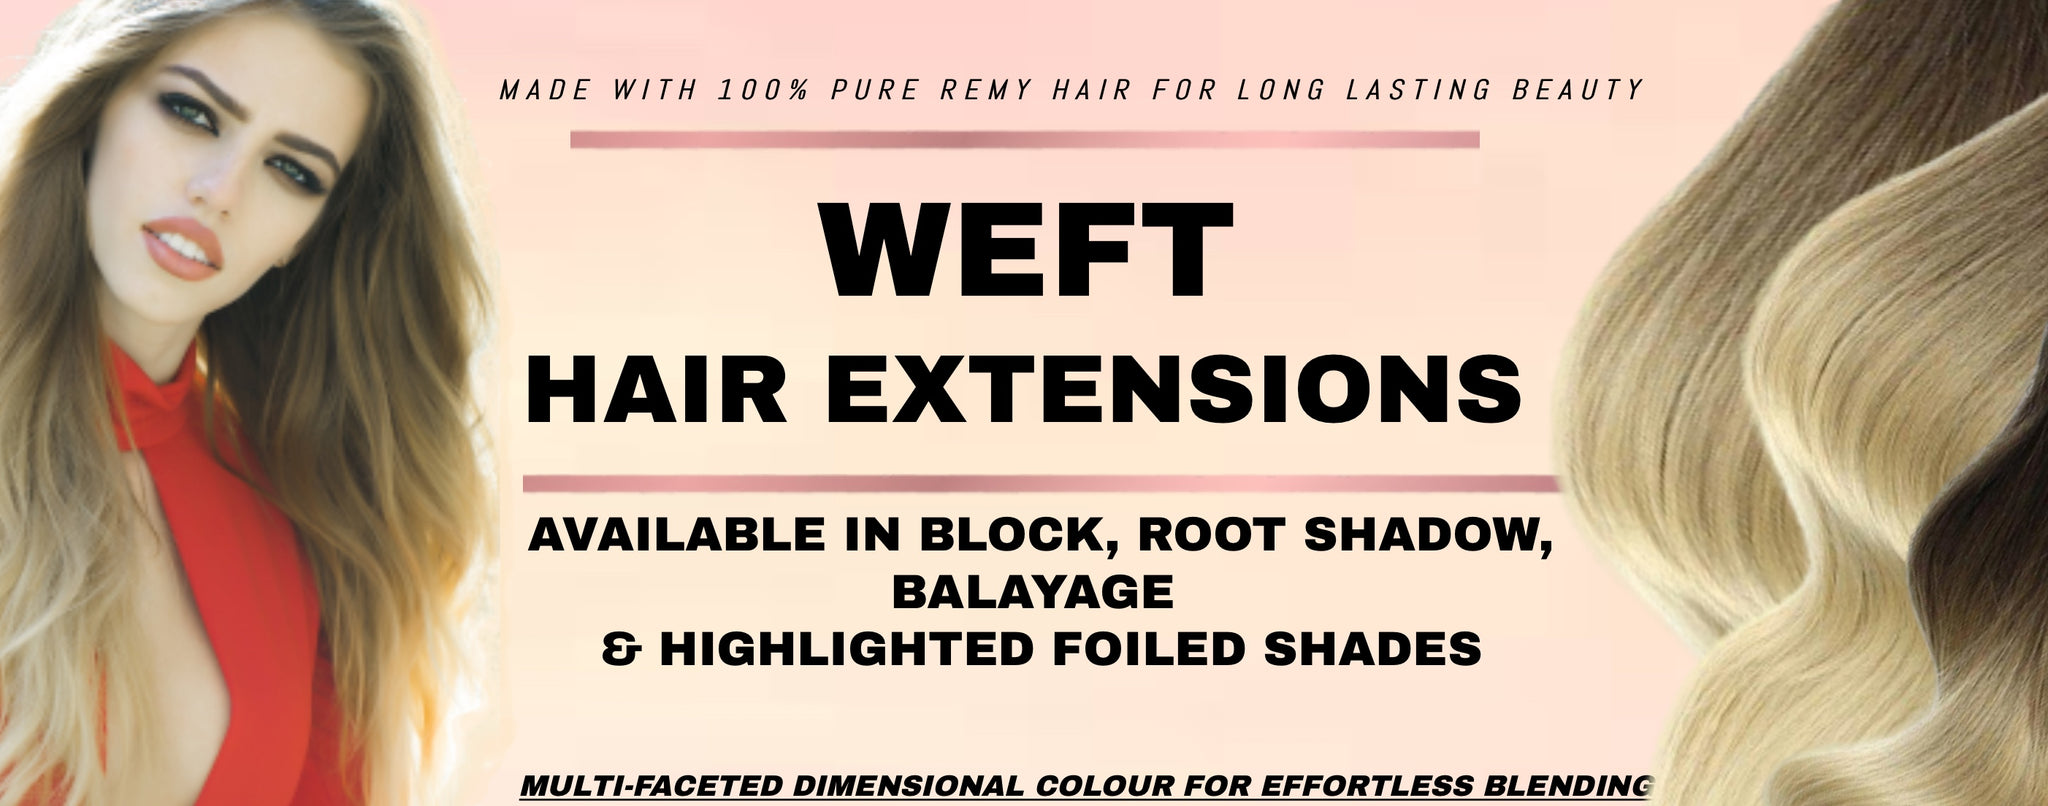 Best and most beautiful range of weft hair extensions Australia